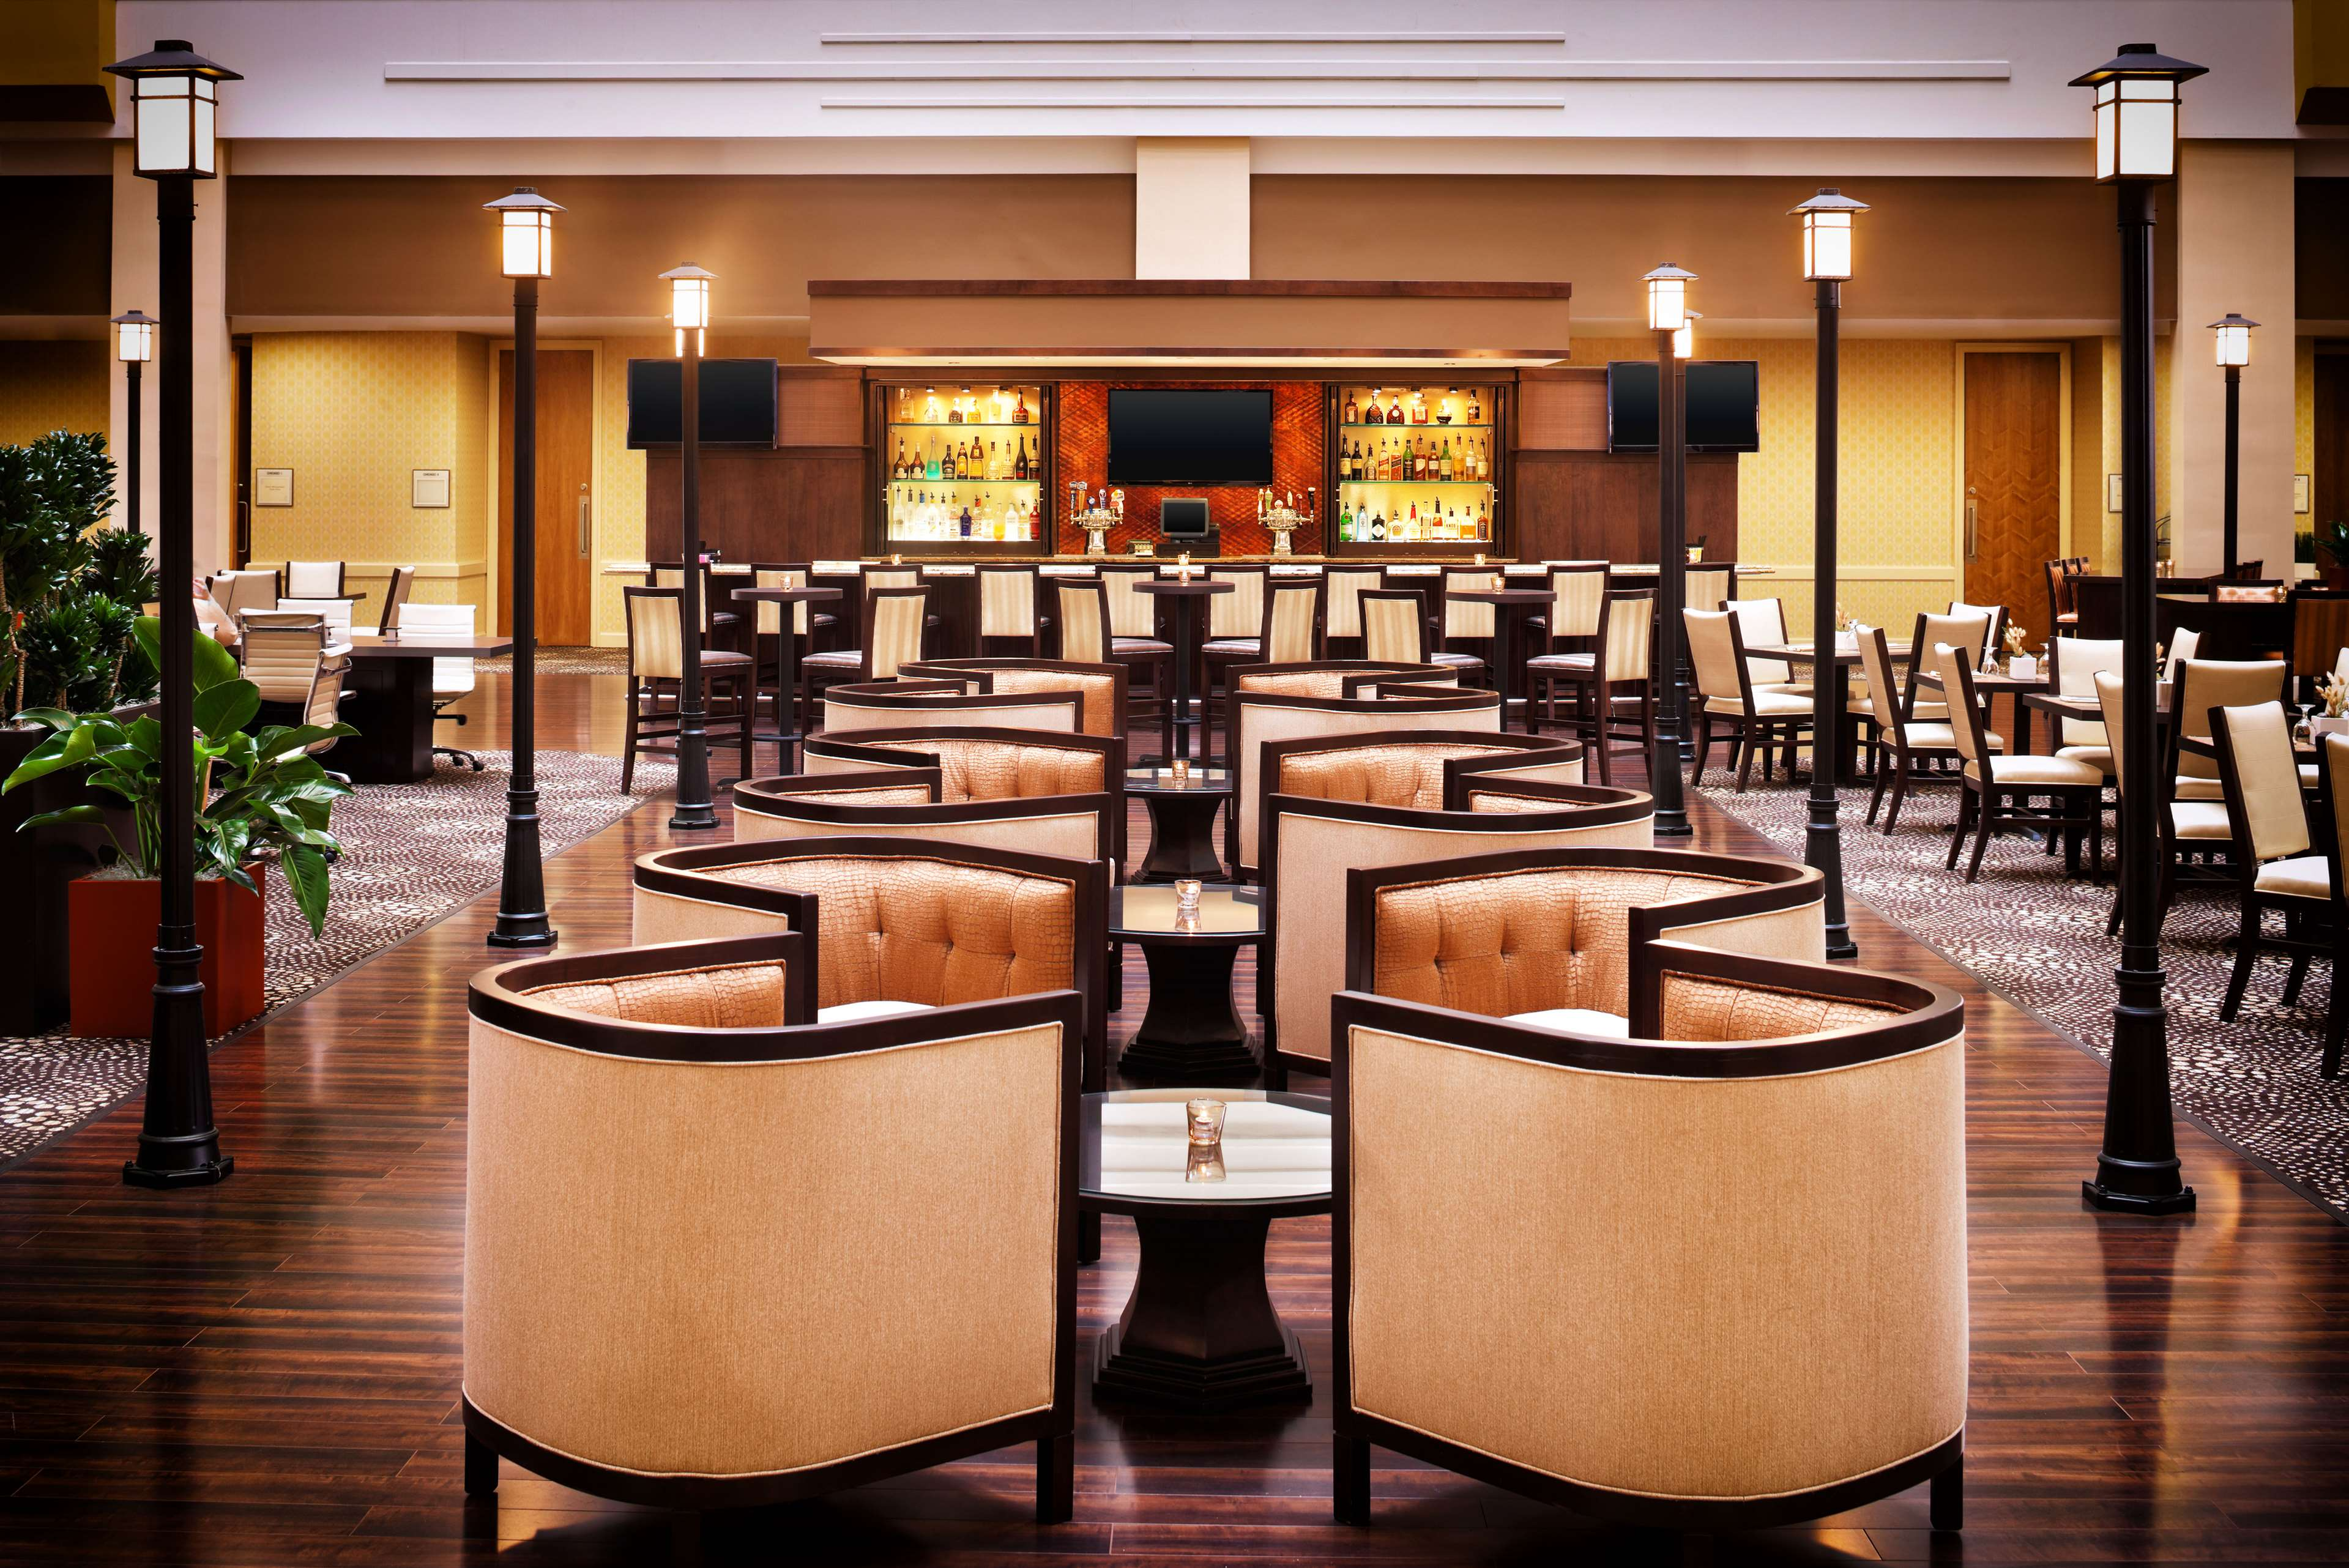 Sheraton Suites Chicago O'Hare image 10